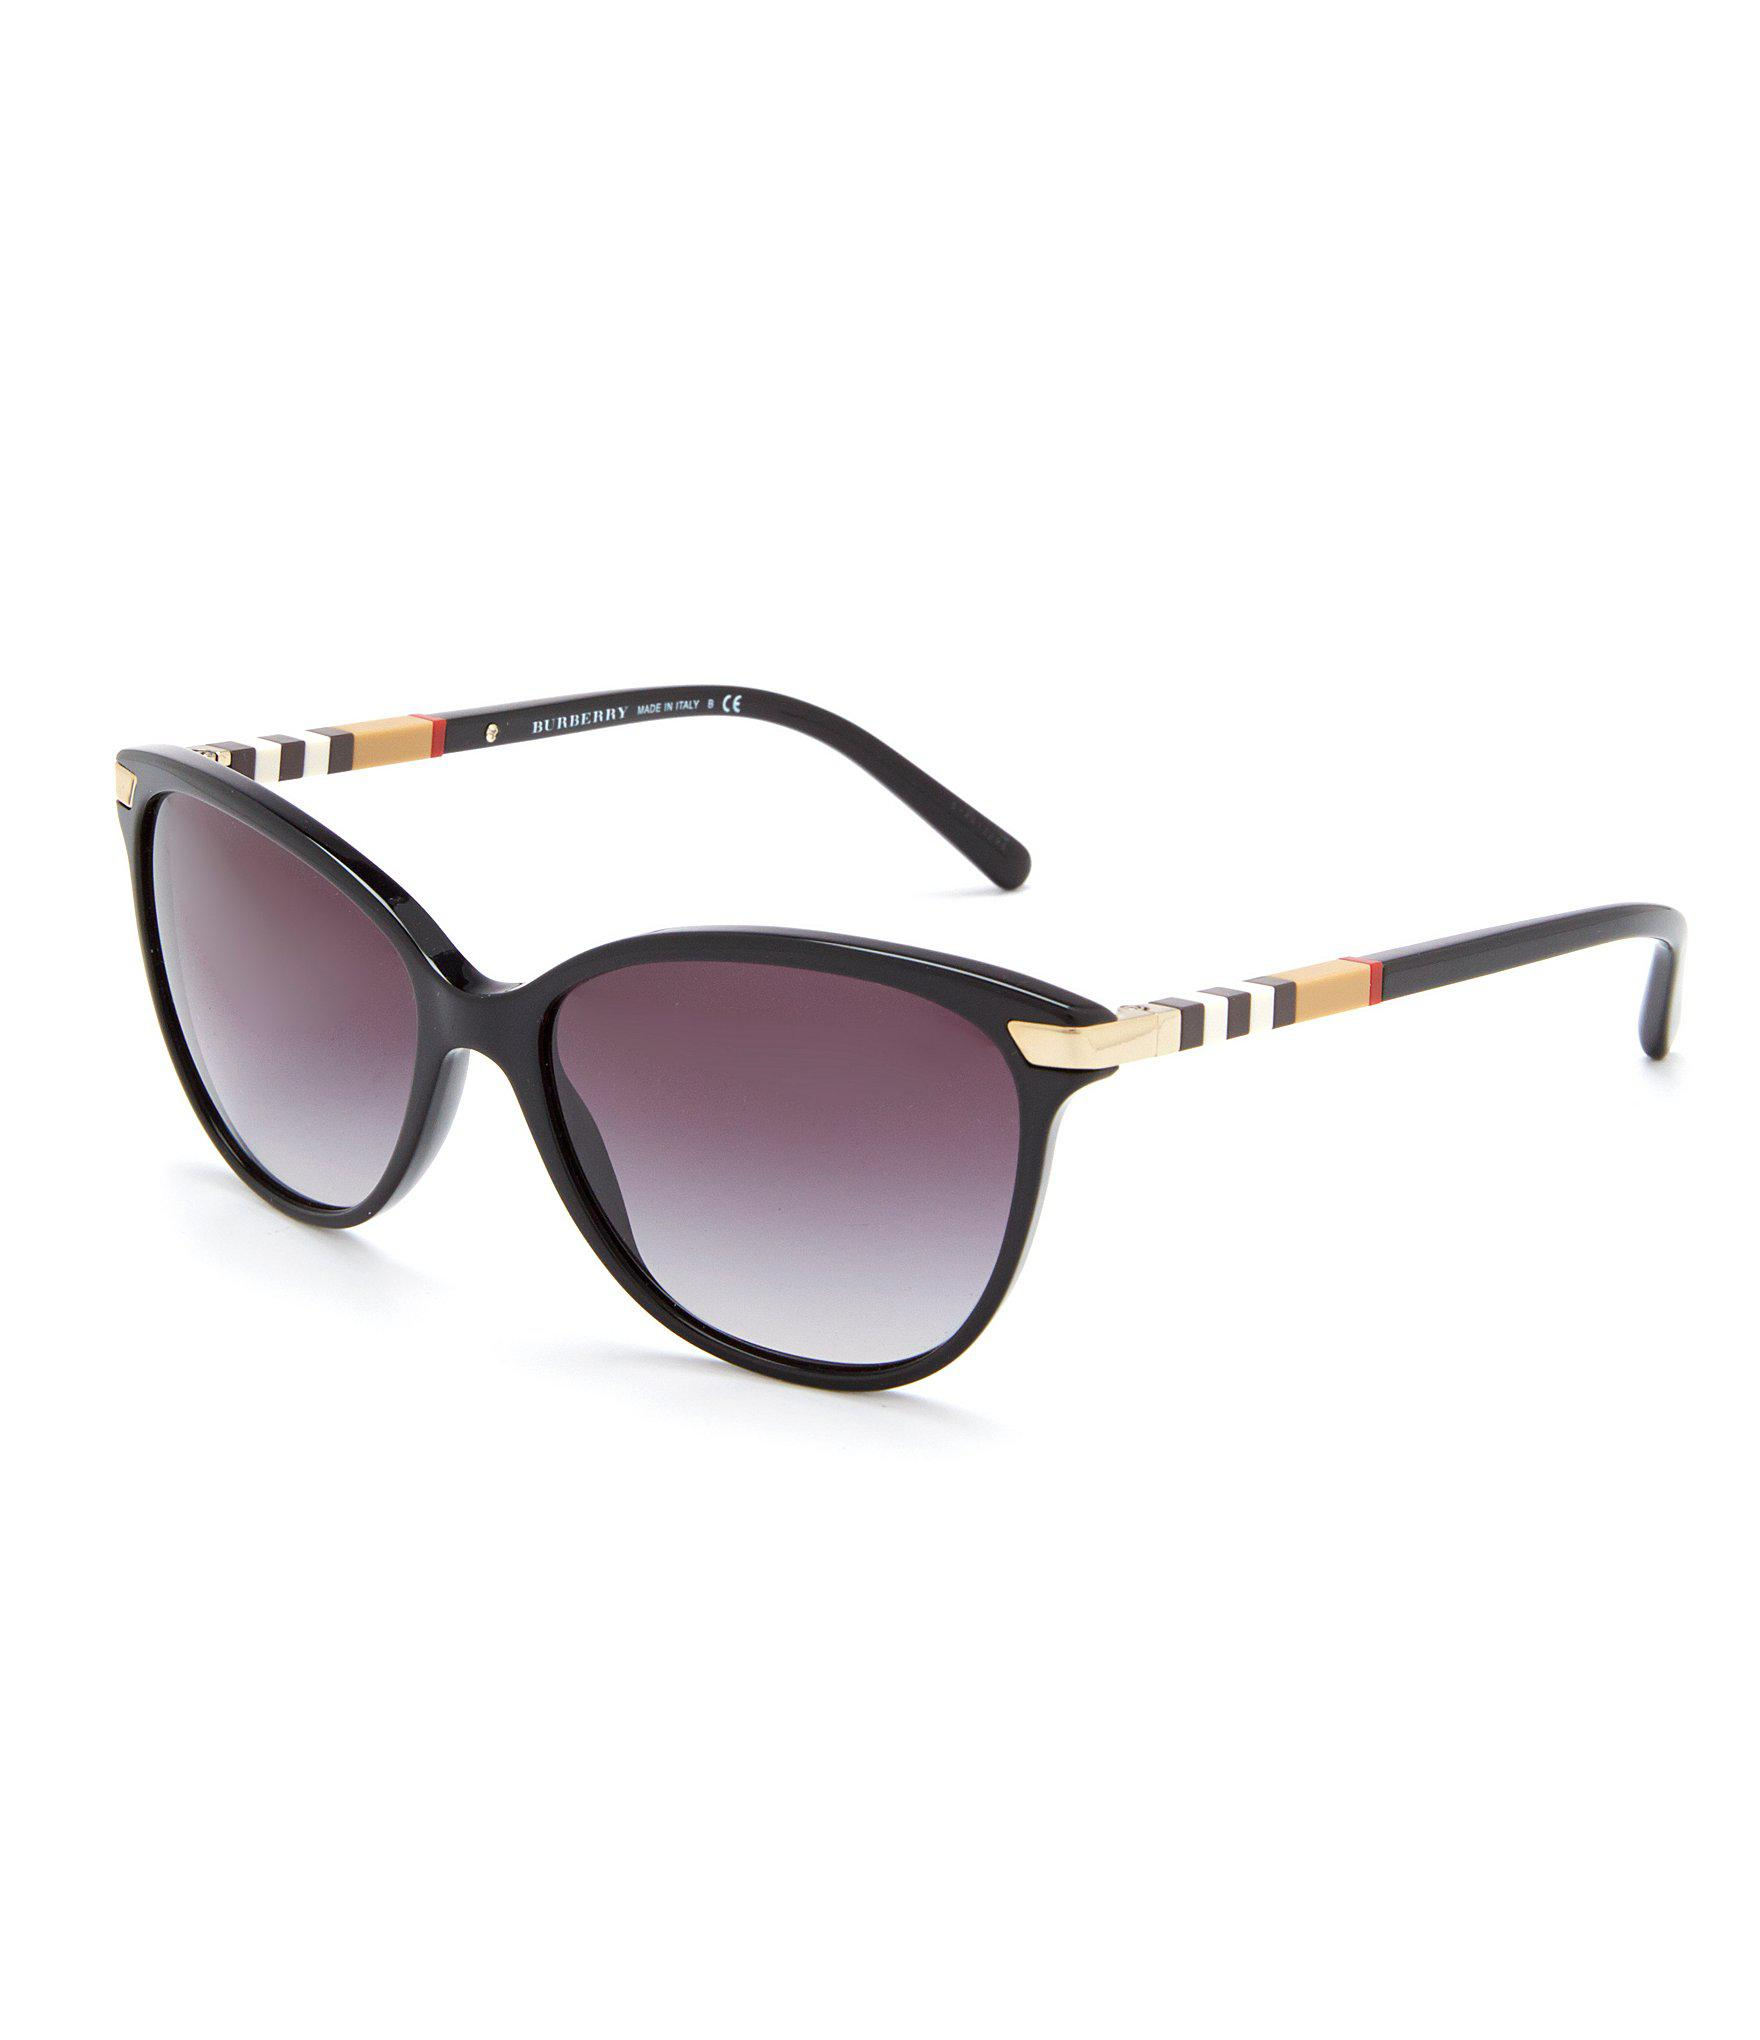 46208a066b60 Burberry Heritage Color Block Square Check Cat Eye Sunglasses in ...